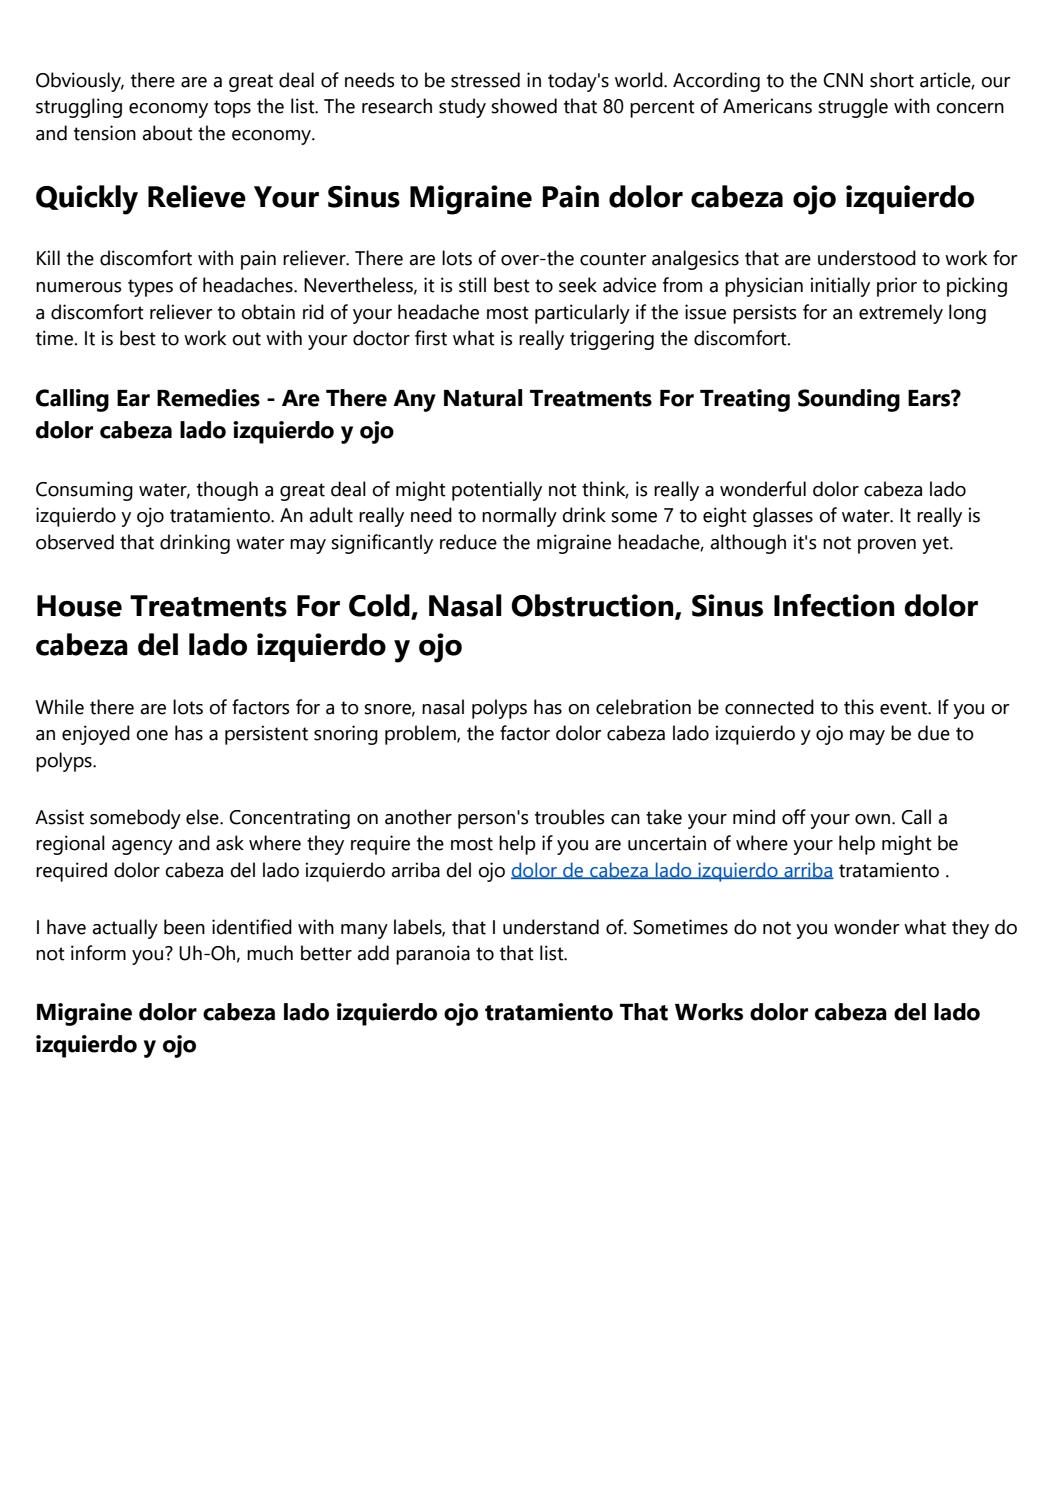 Common Cold - Avoidance And Treatment With House Remedies